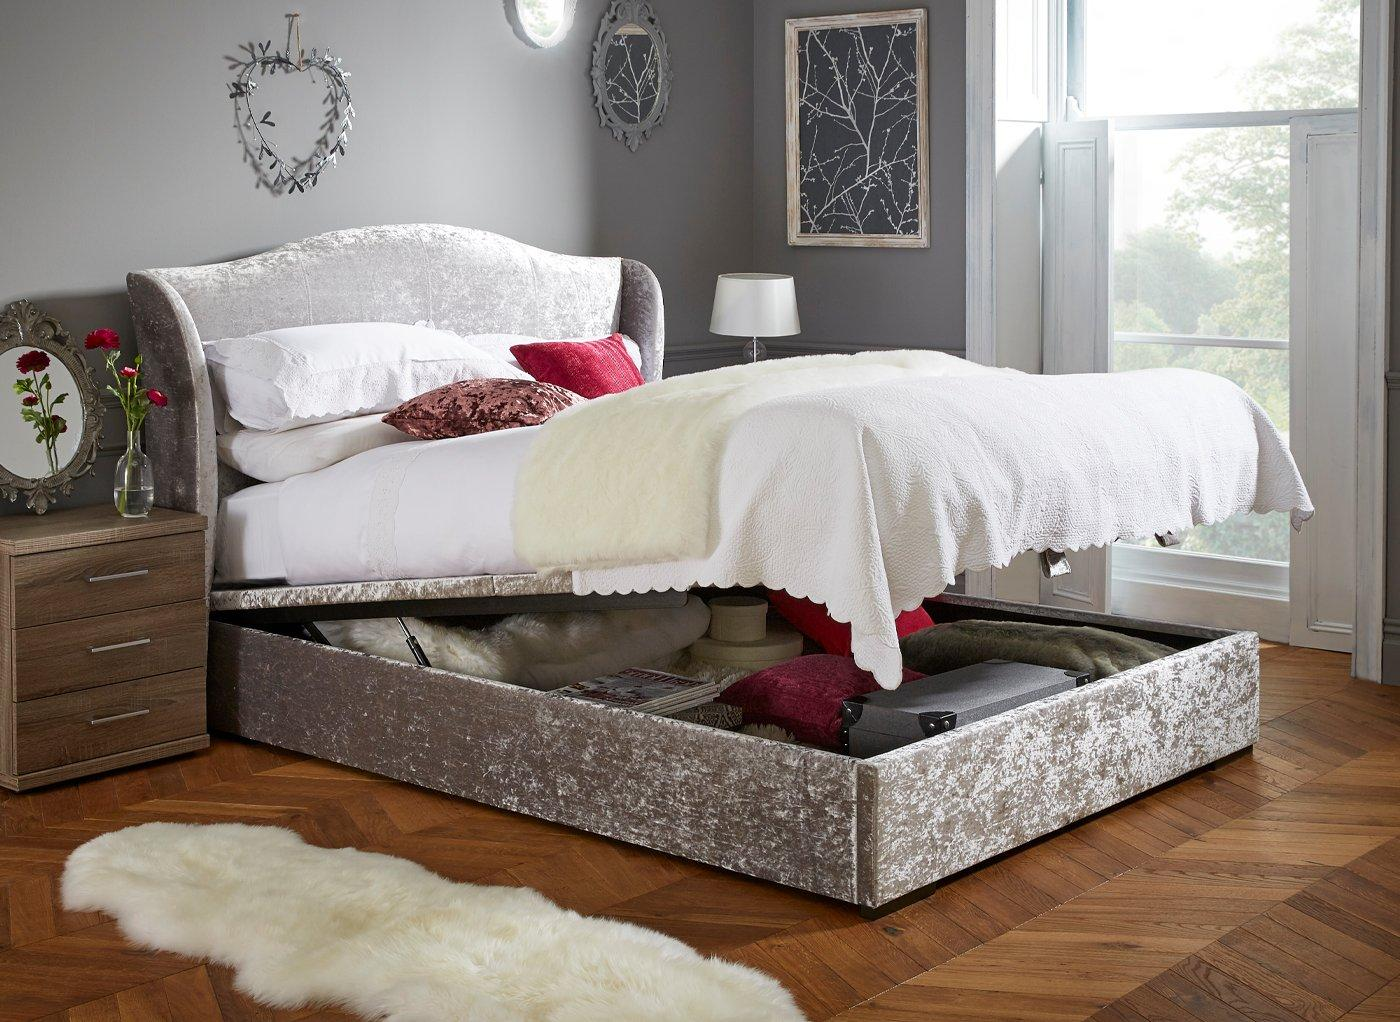 showan-crushed-velvet-finish-upholstered-ottoman-bed-frame